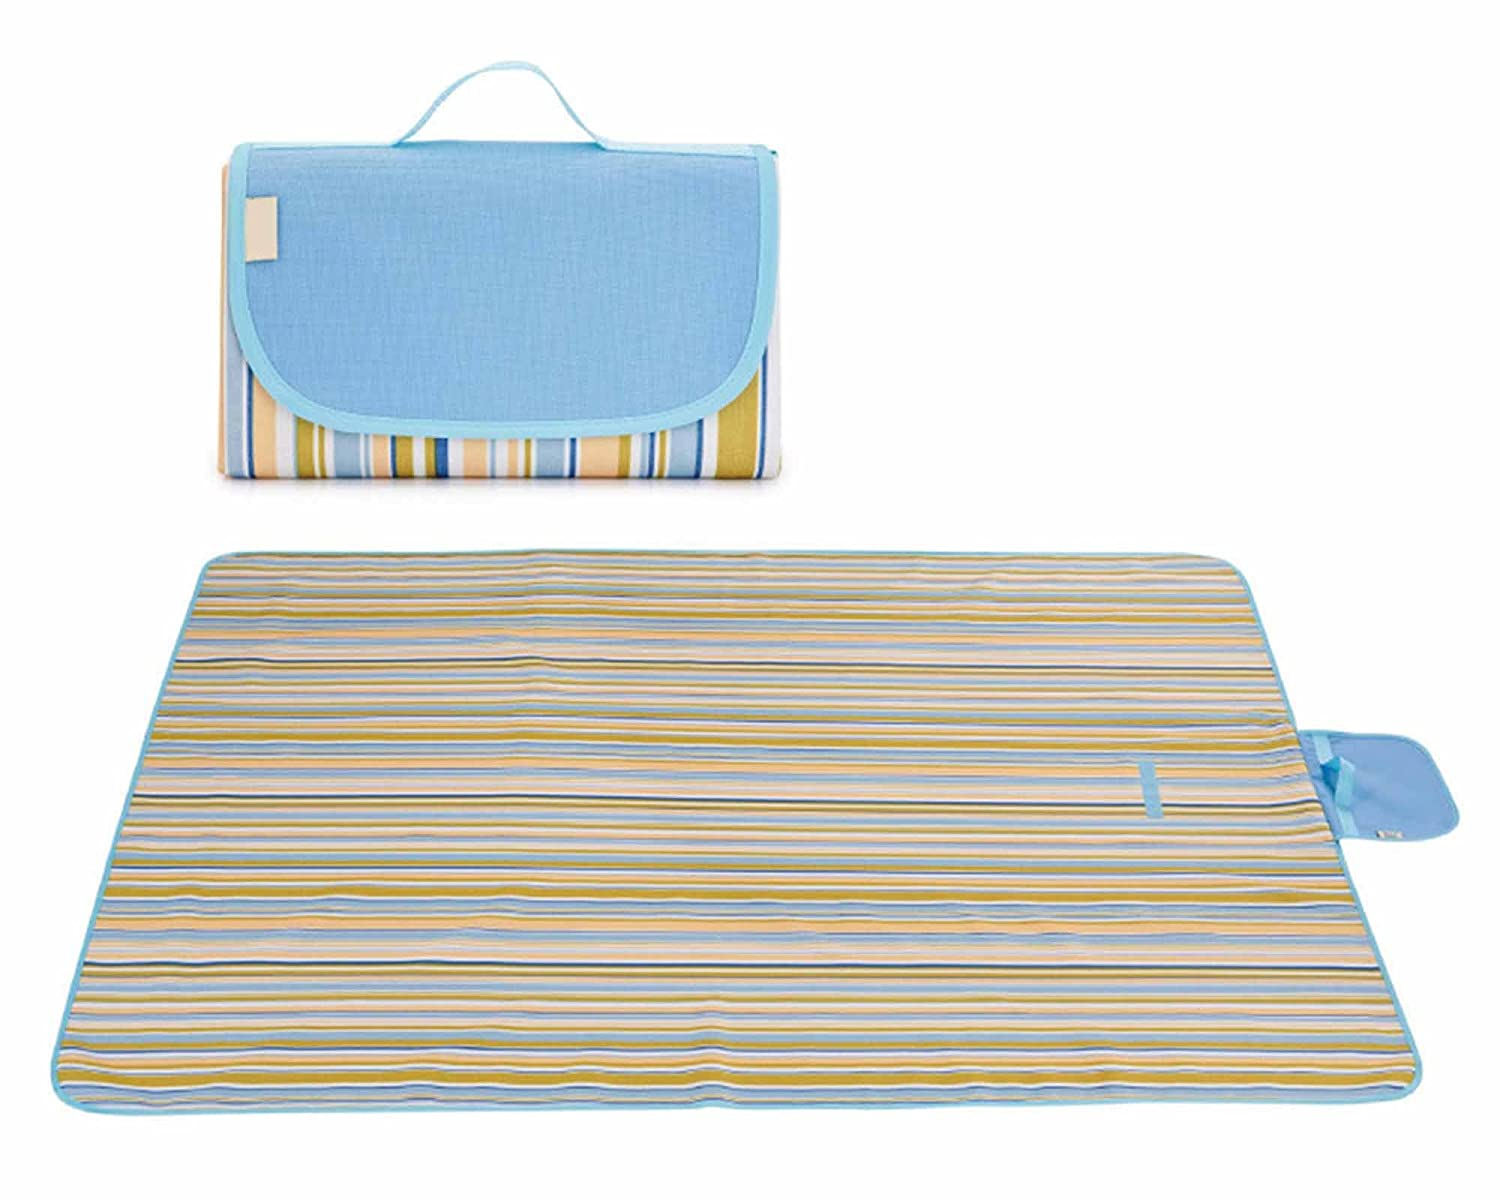 Skyblueee strip 145200cm Picnic Pad Mat Moisture Proof Blanket Outdoor Wild Donkey Beach Tent Carpet Waterproof Picnic Cloth with Handle